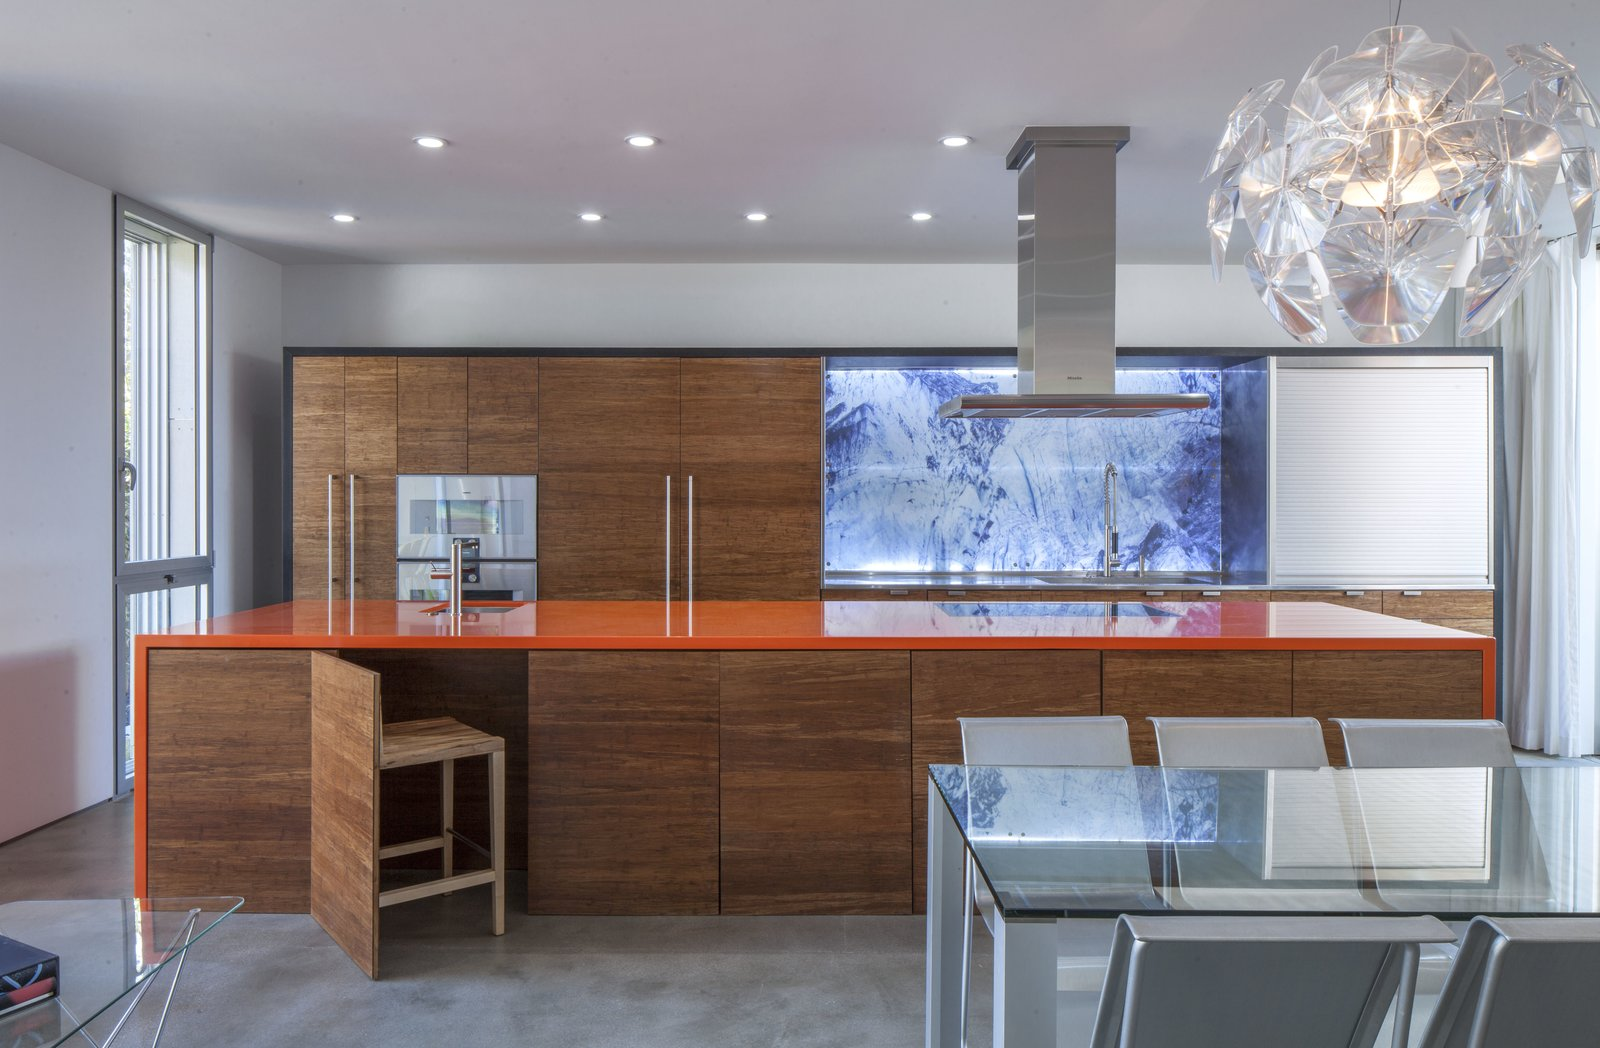 "The design and use of color is inspired by dramatic Icelandic landscape to create contrasting stimulating interiors. The orange (volcanic) creates a multi-functional gathering point in the heart of the house. The swimming pool has a blue lagoon color and the cabinets are the colors of glaciers and lava. To maximize the use of space, the ""disappearing"" kitchen chairs are easily stored under the island"